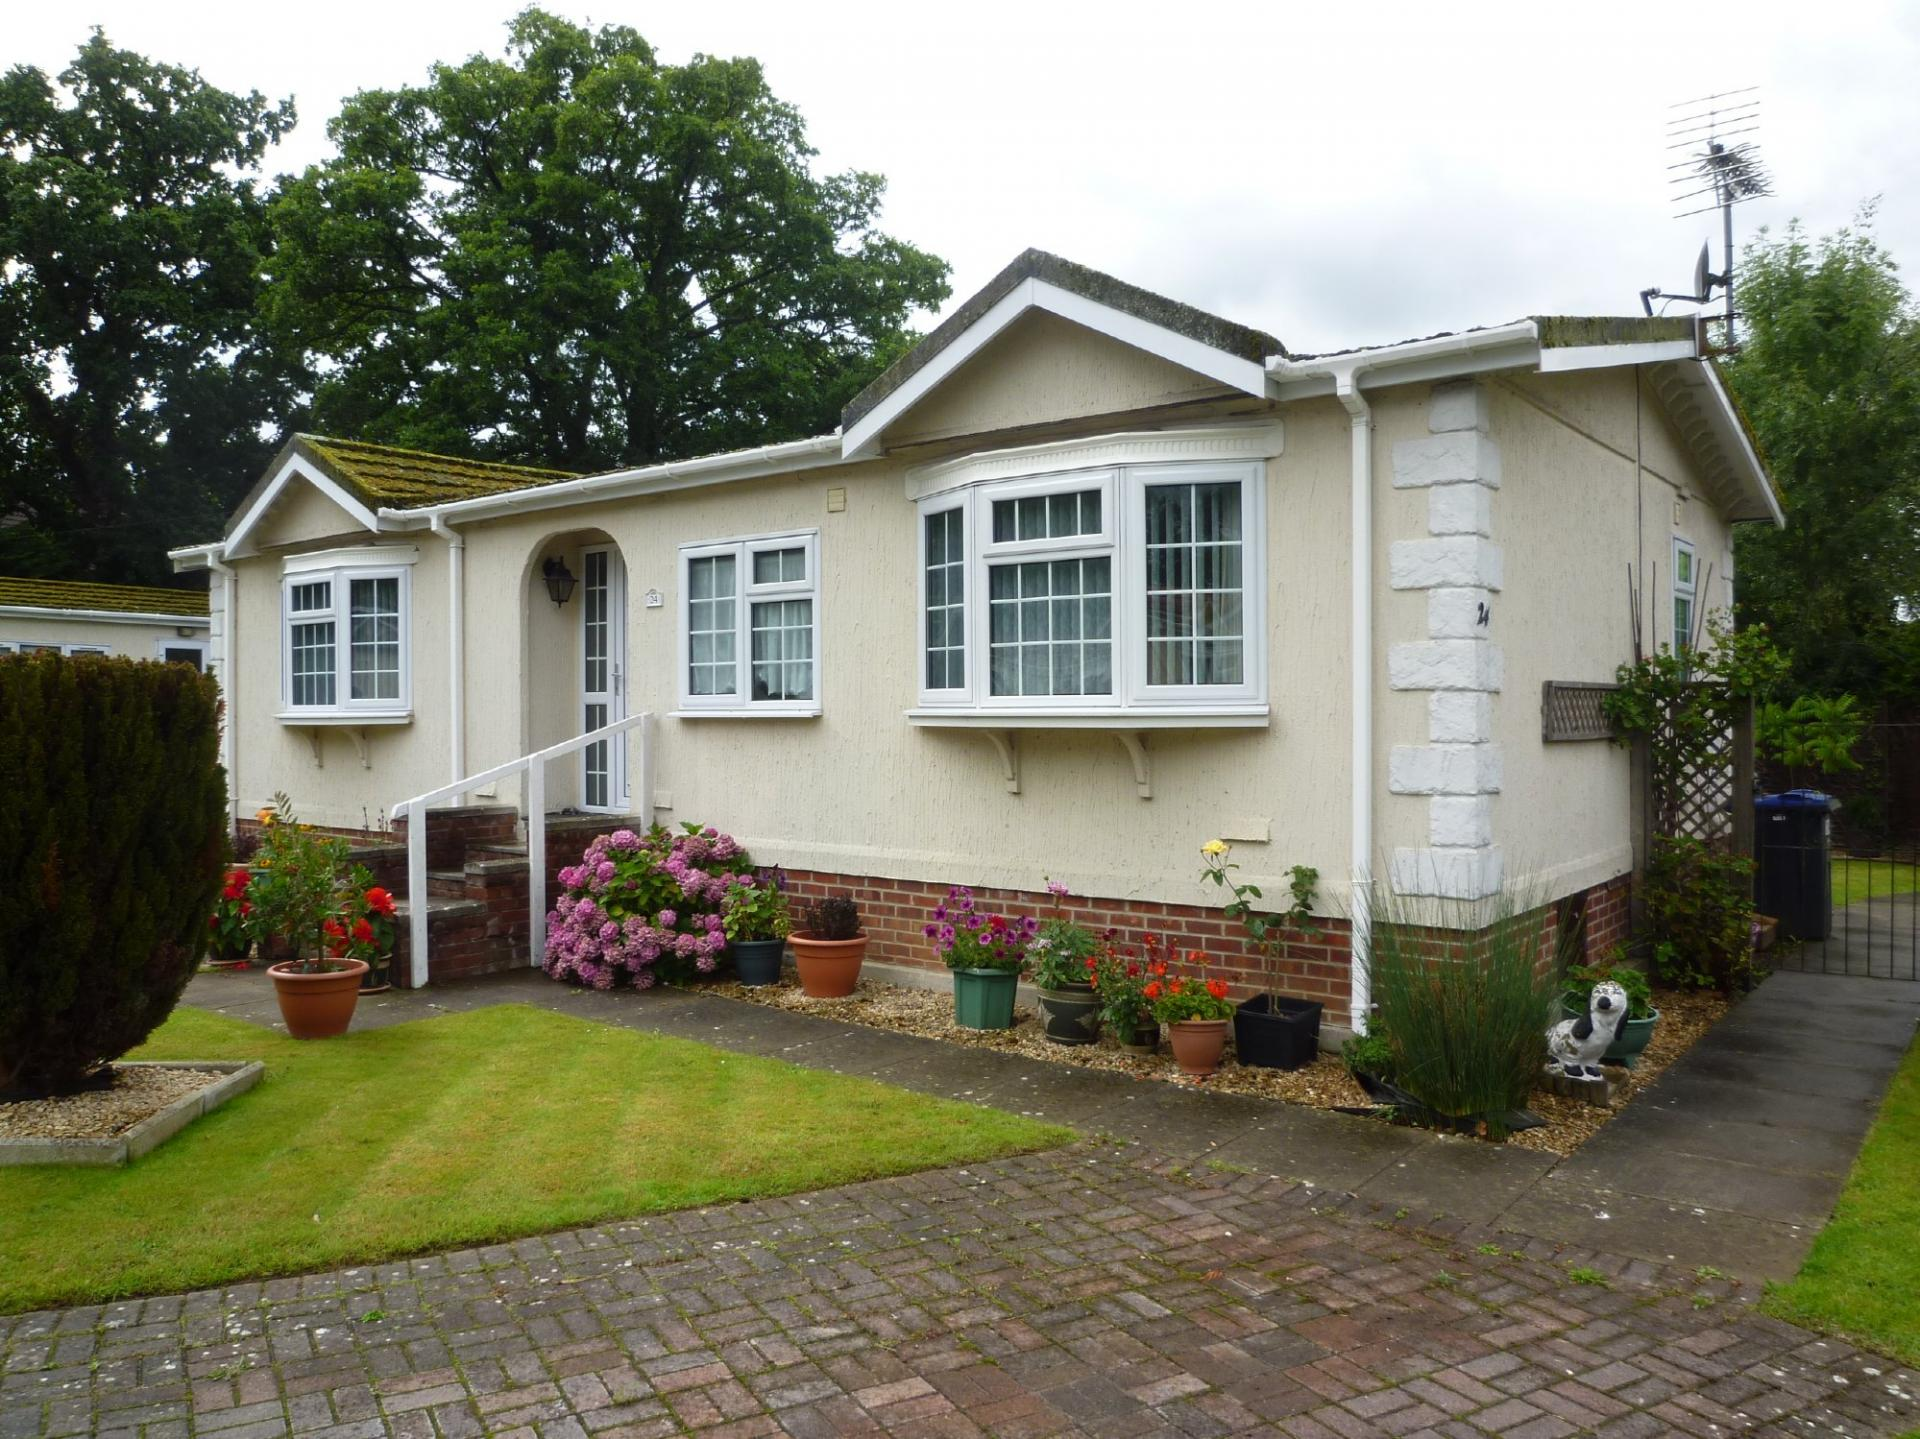 2 bedroom Mobile Home for sale in Trowbridge